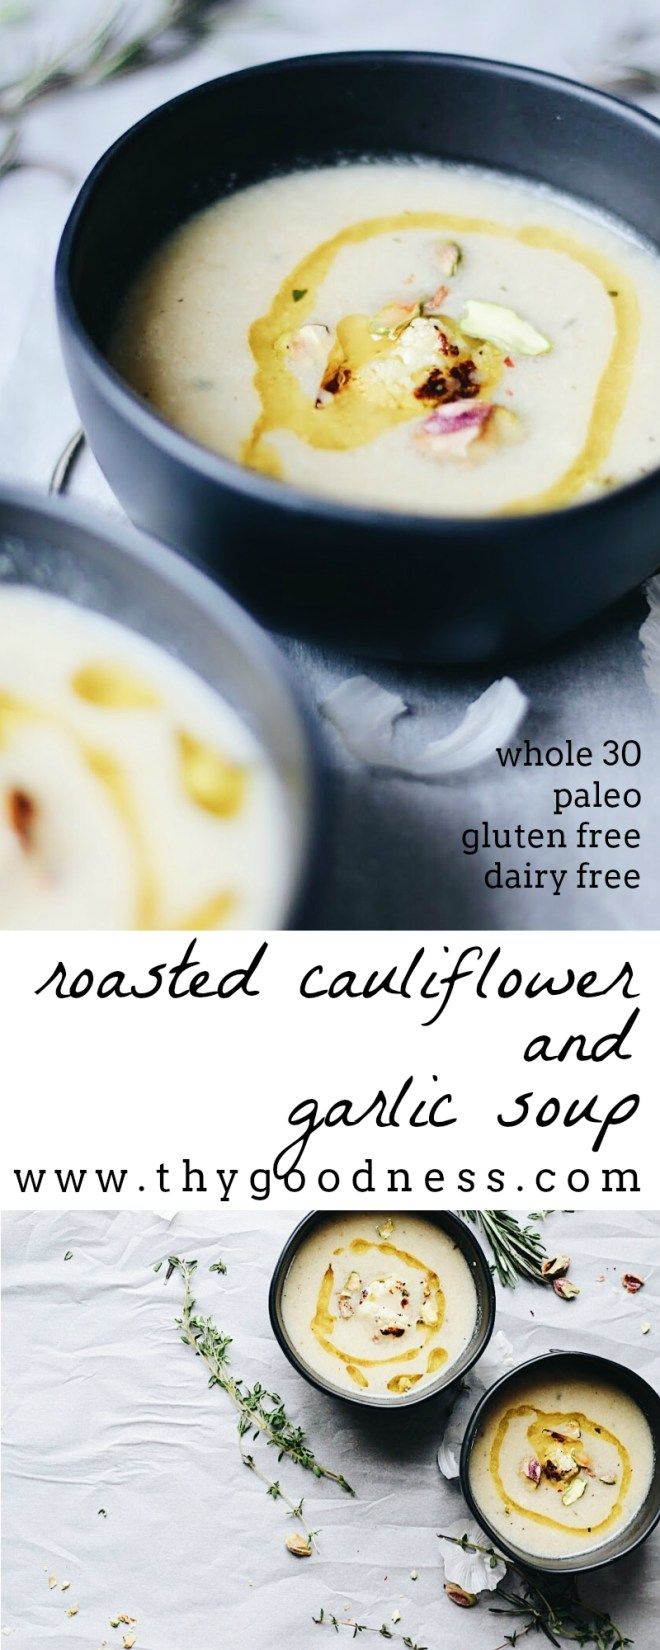 Grab your blanket and your favorite book. Roasted Cauliflower & Garlic Soup is a great addition to your Sunday afternoon. It is whole30 and…Continue Reading